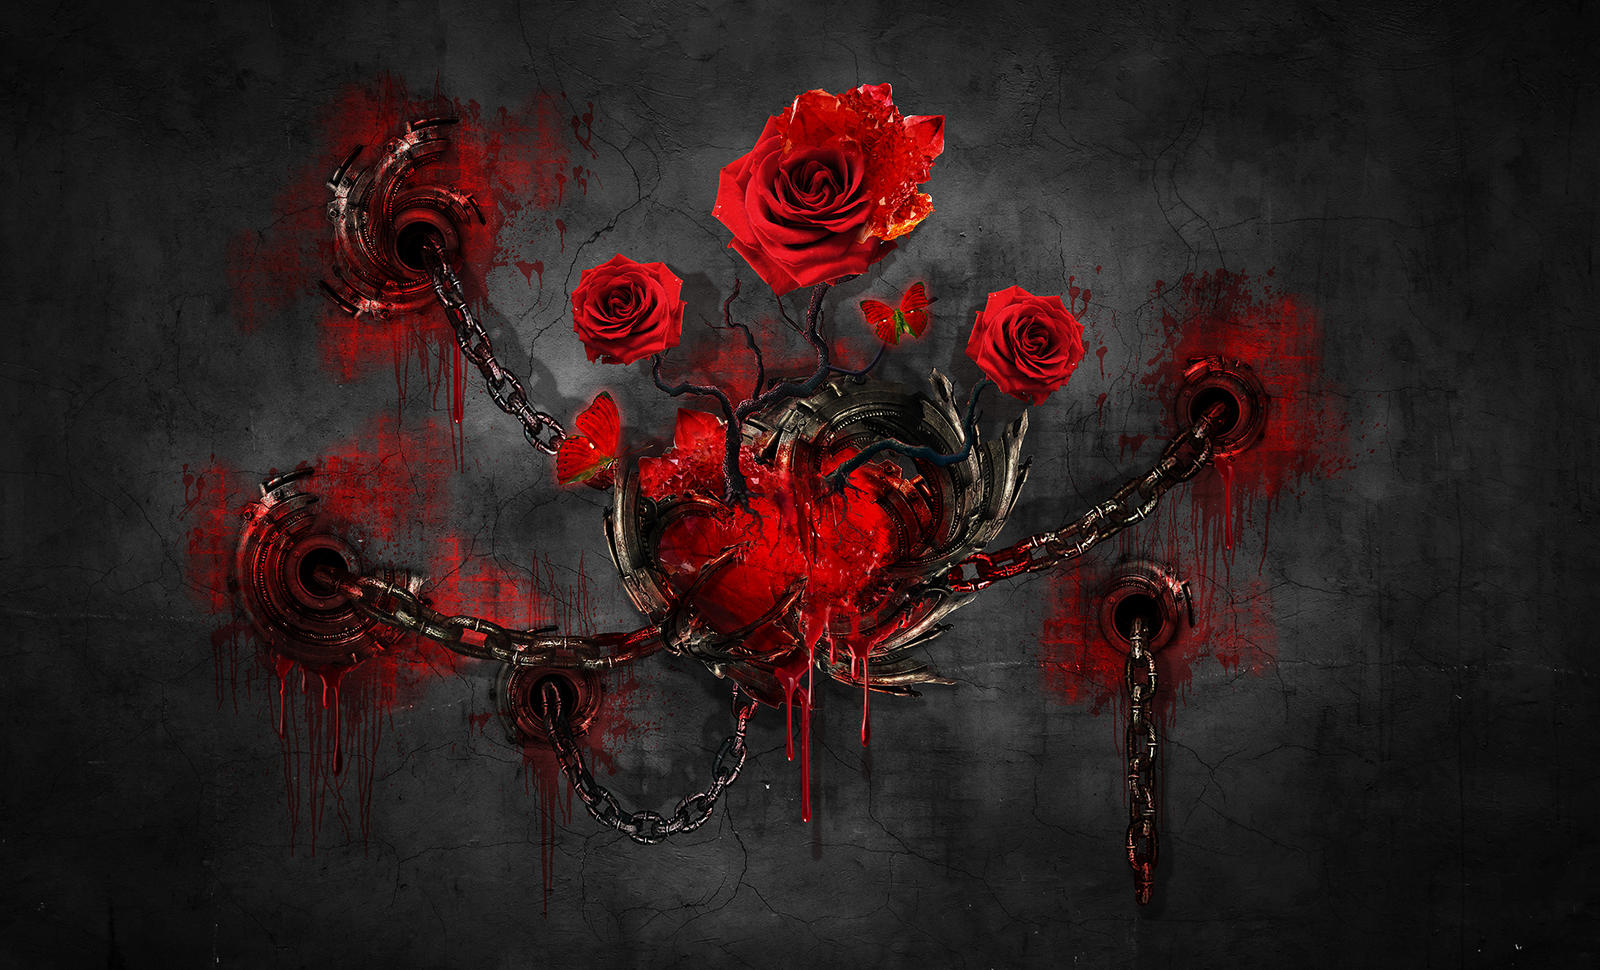 The Silence of the Roses